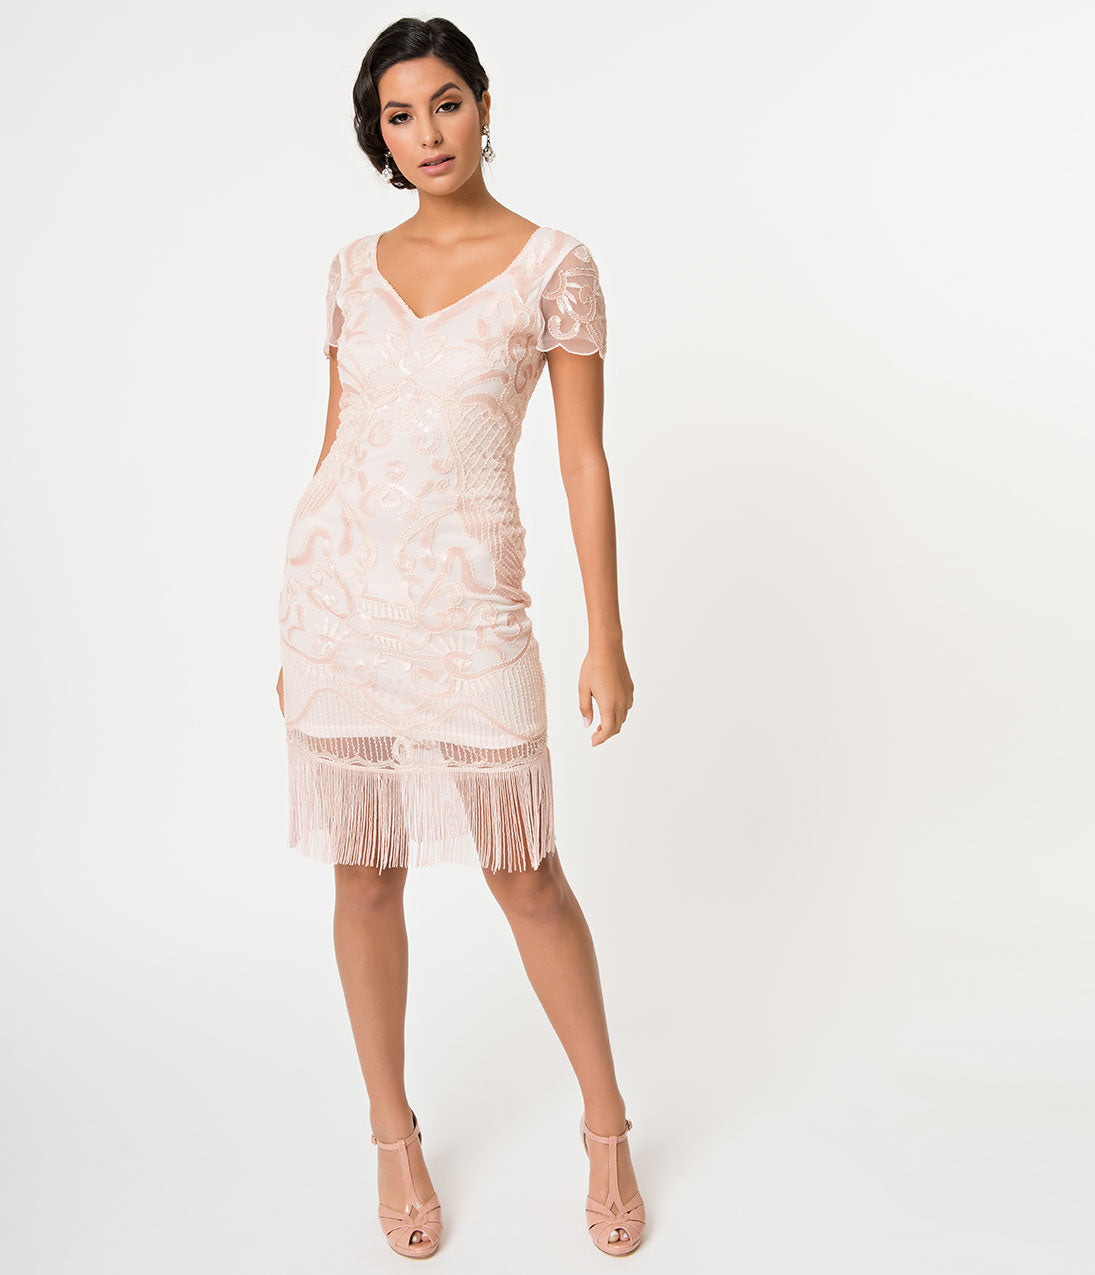 1920s Evening Dresses & Formal Gowns Light Pink Beaded  Sequin Cap Sleeve Fringe Cocktail Flapper Dress $98.00 AT vintagedancer.com